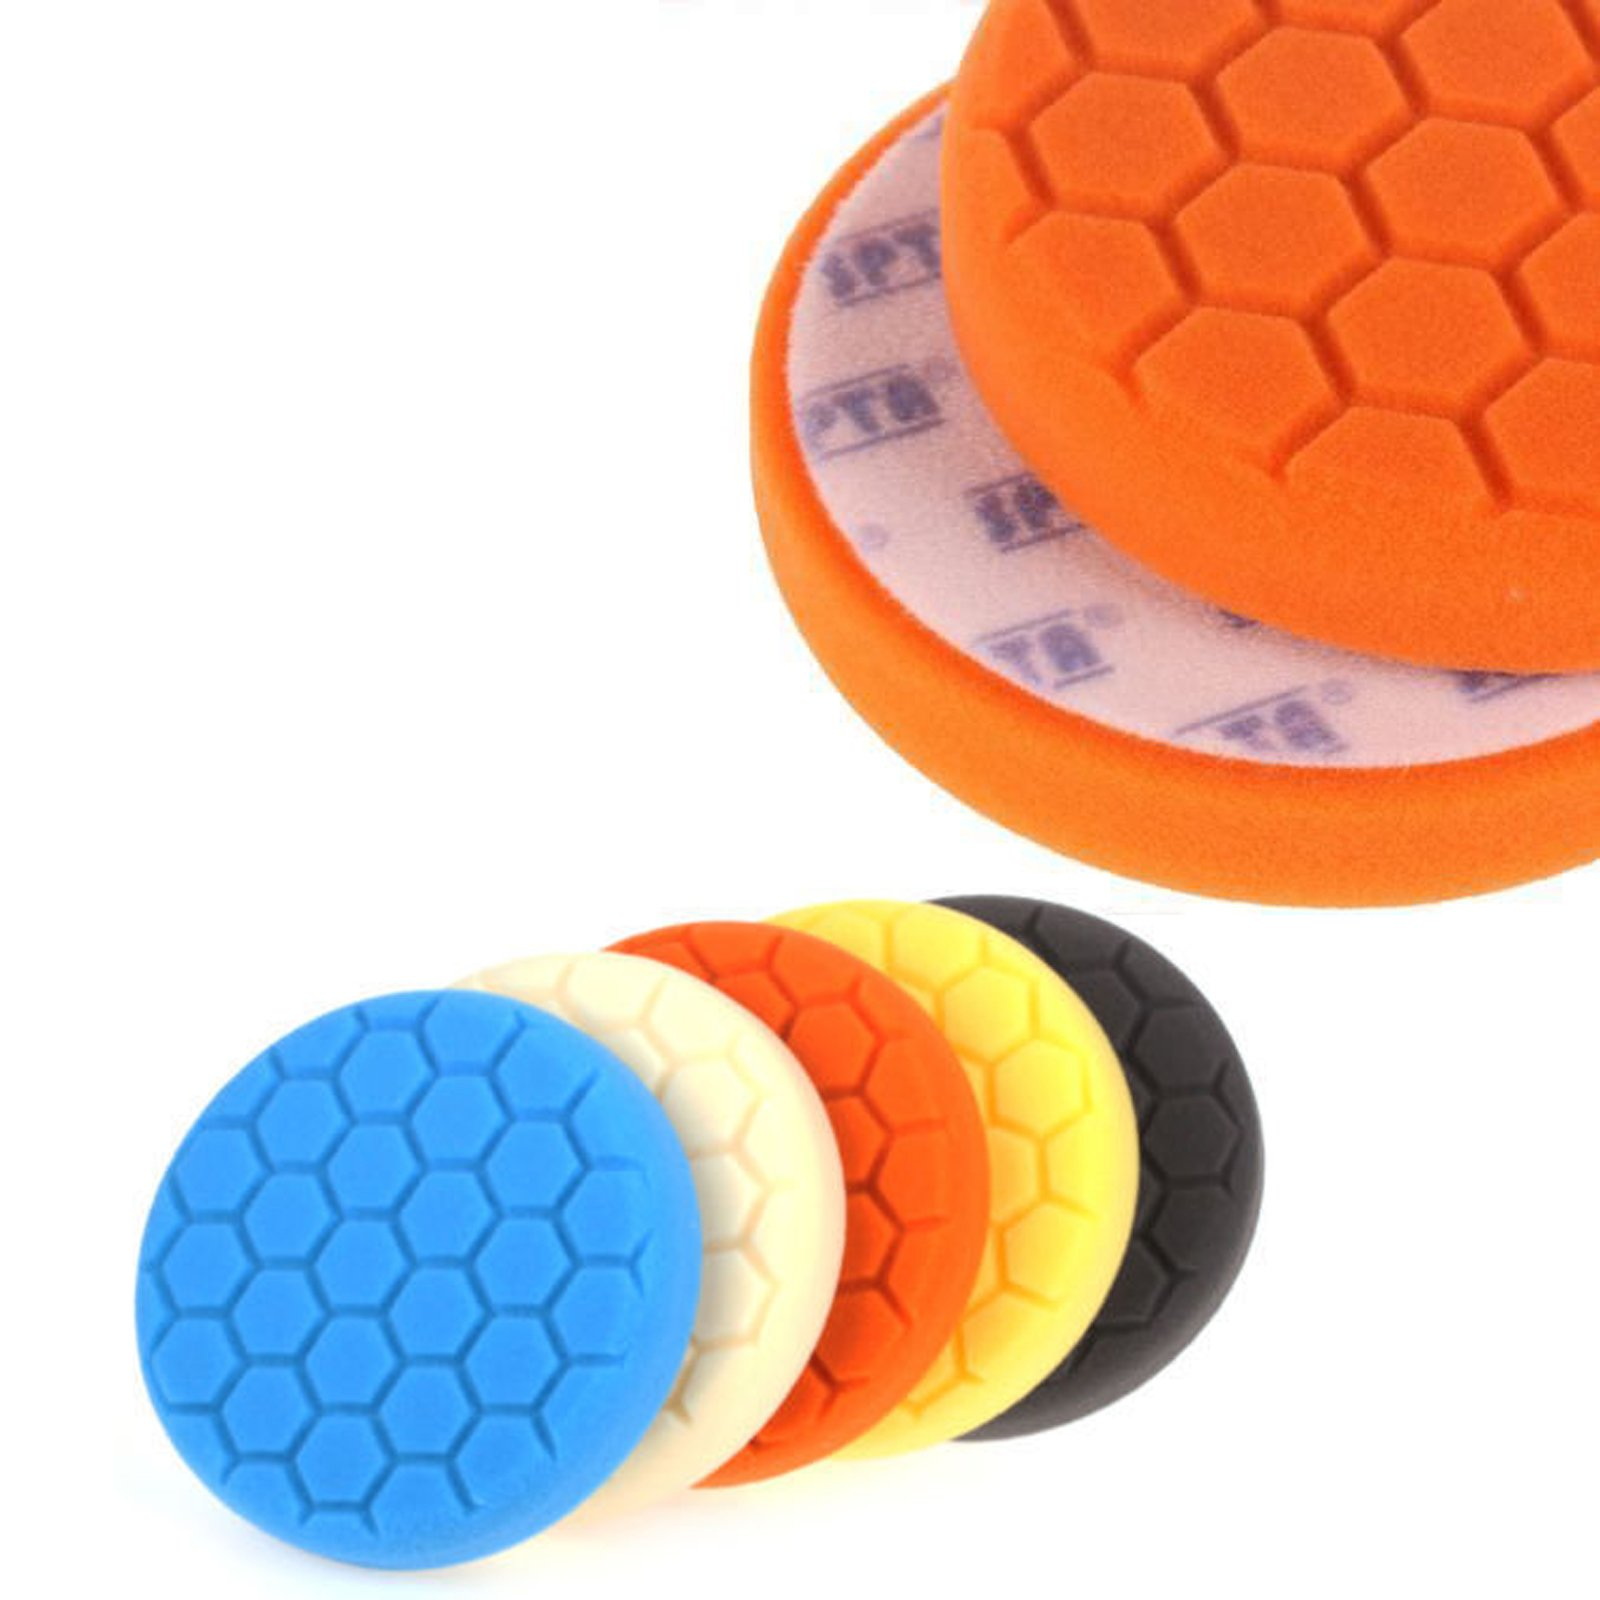 5 pack 6'' Five Color Functions Buffing Pads Sponge Polishing Pad Kit For Car Polisher Finest Foam Durability Suitable for All Models of Vehicles Car